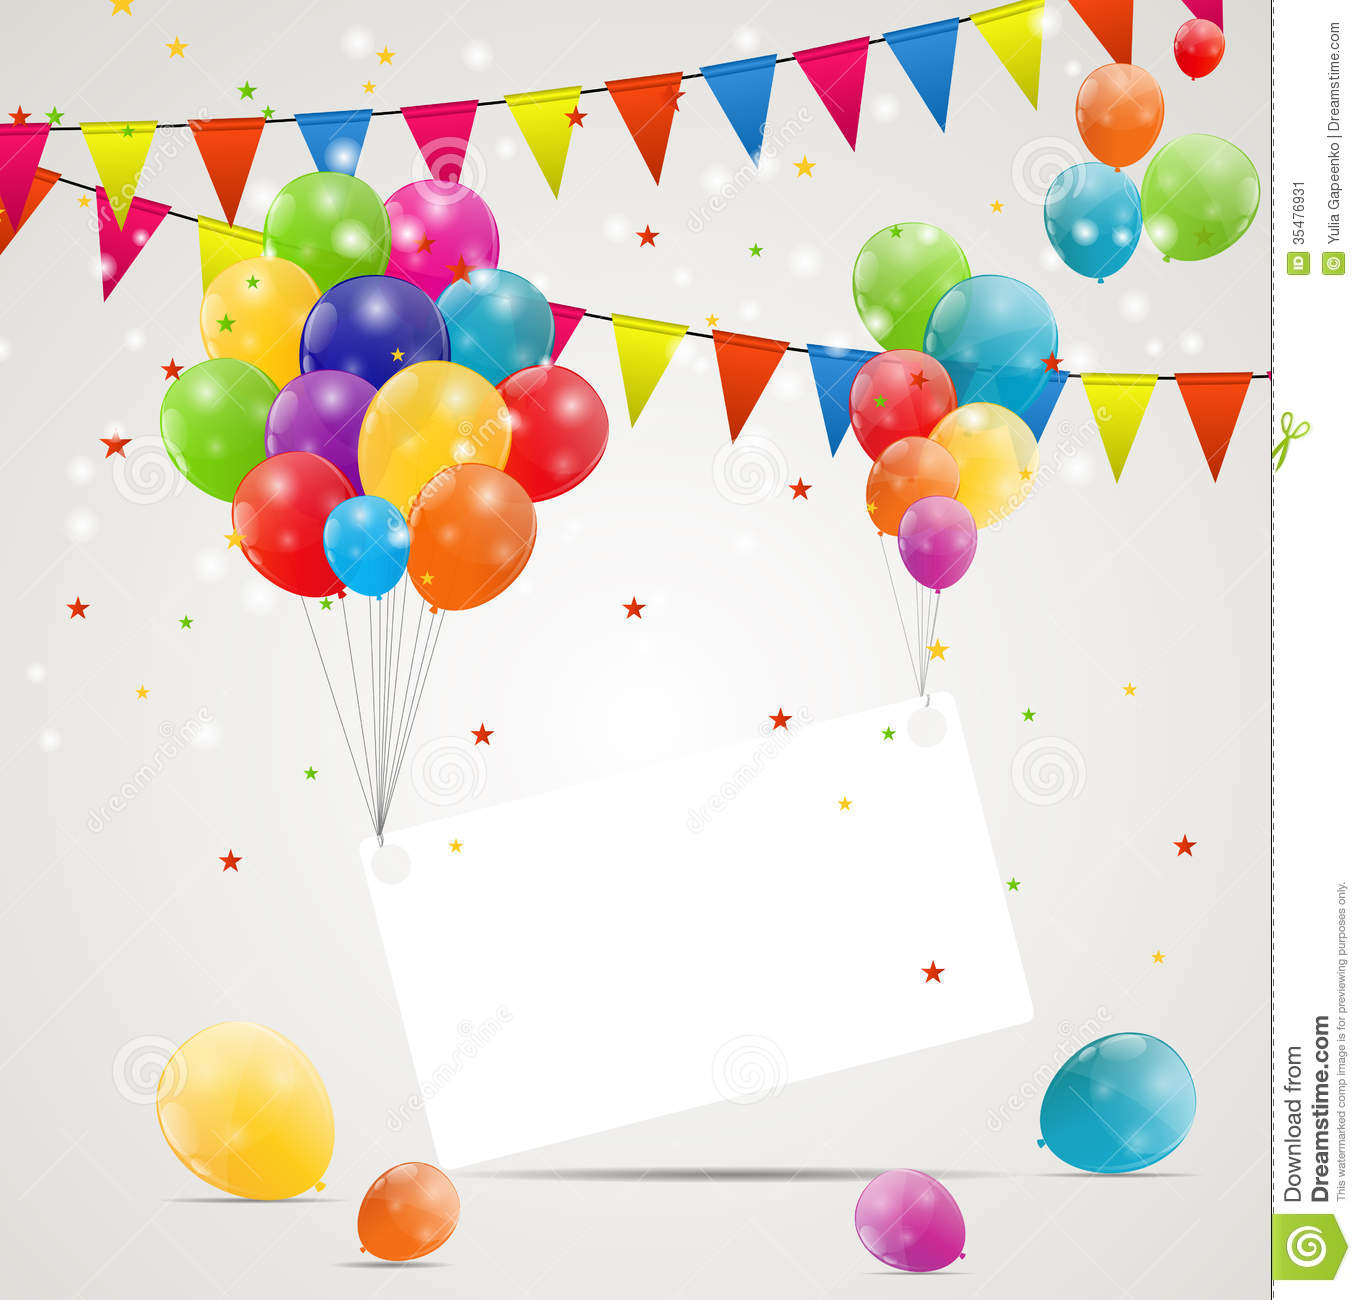 Color Glossy Balloons Birthday Card Background Stock